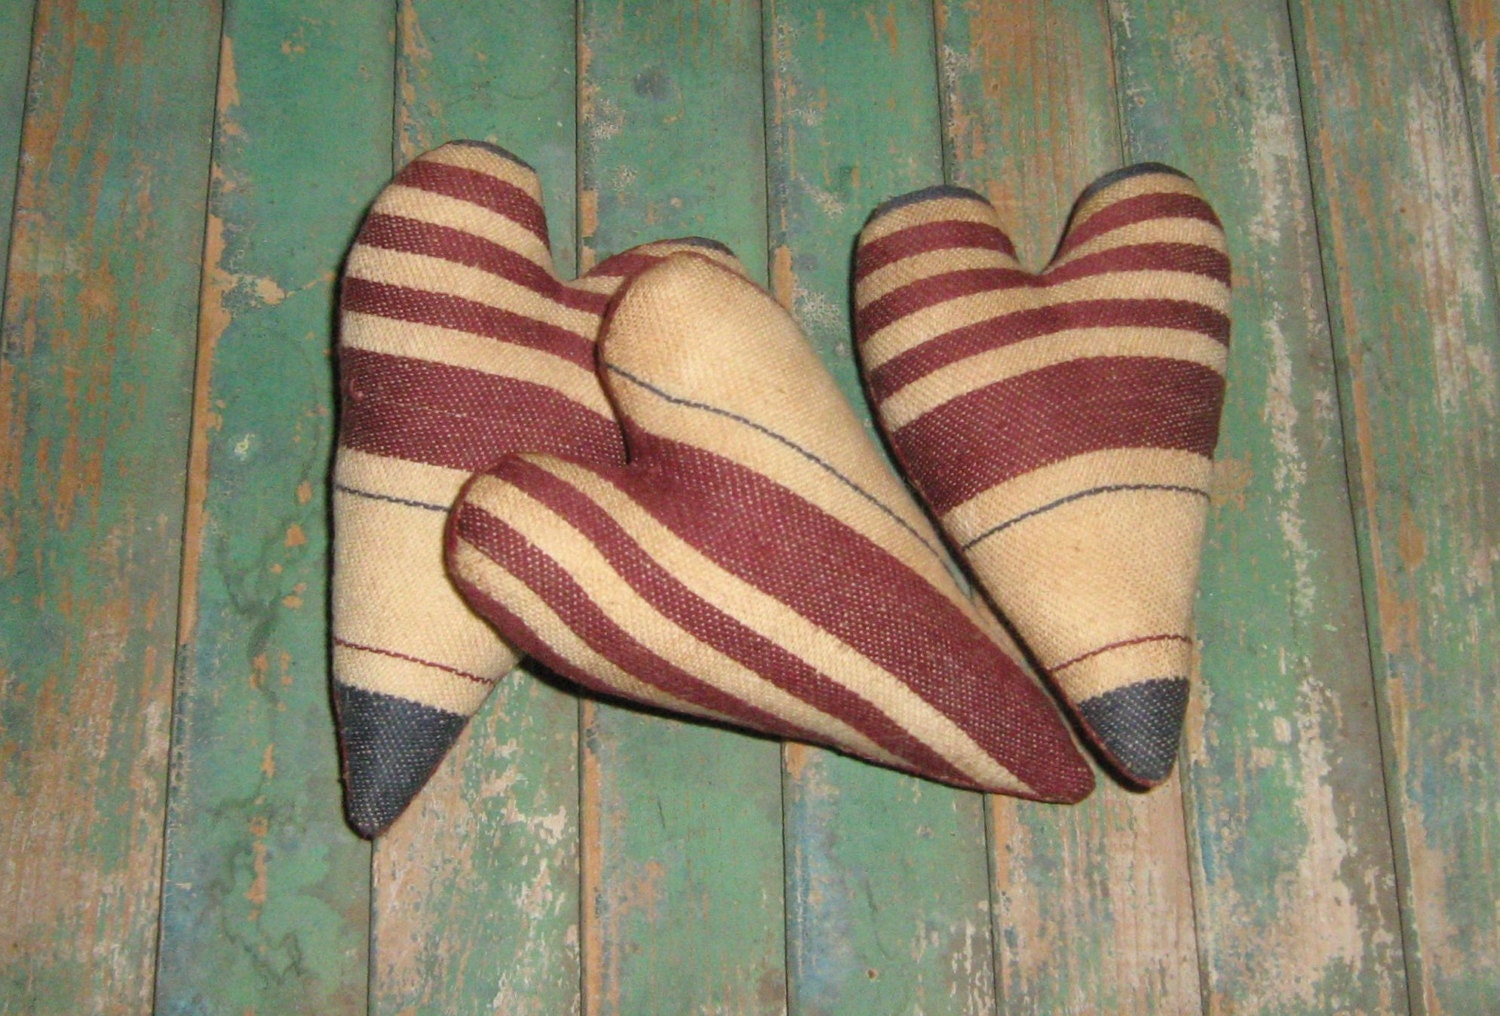 3 Americana Heart Ornaments - Bowl Fillers - Tucks - Shelf Sitters - cranberry burgundy blue off-white natural - PrairiePrimitives